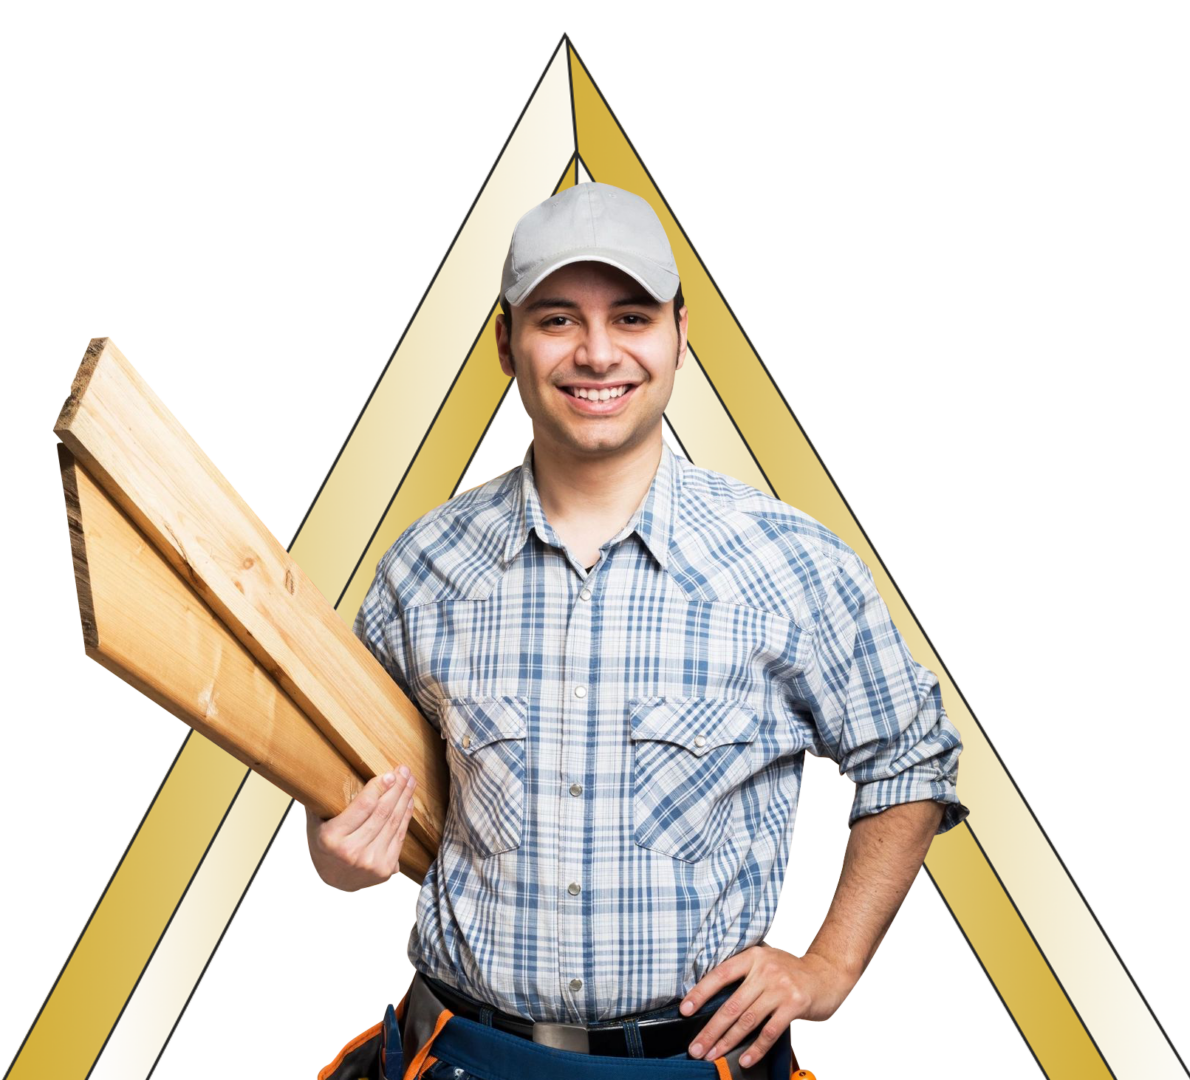 construction-man-holding-wood-(2)